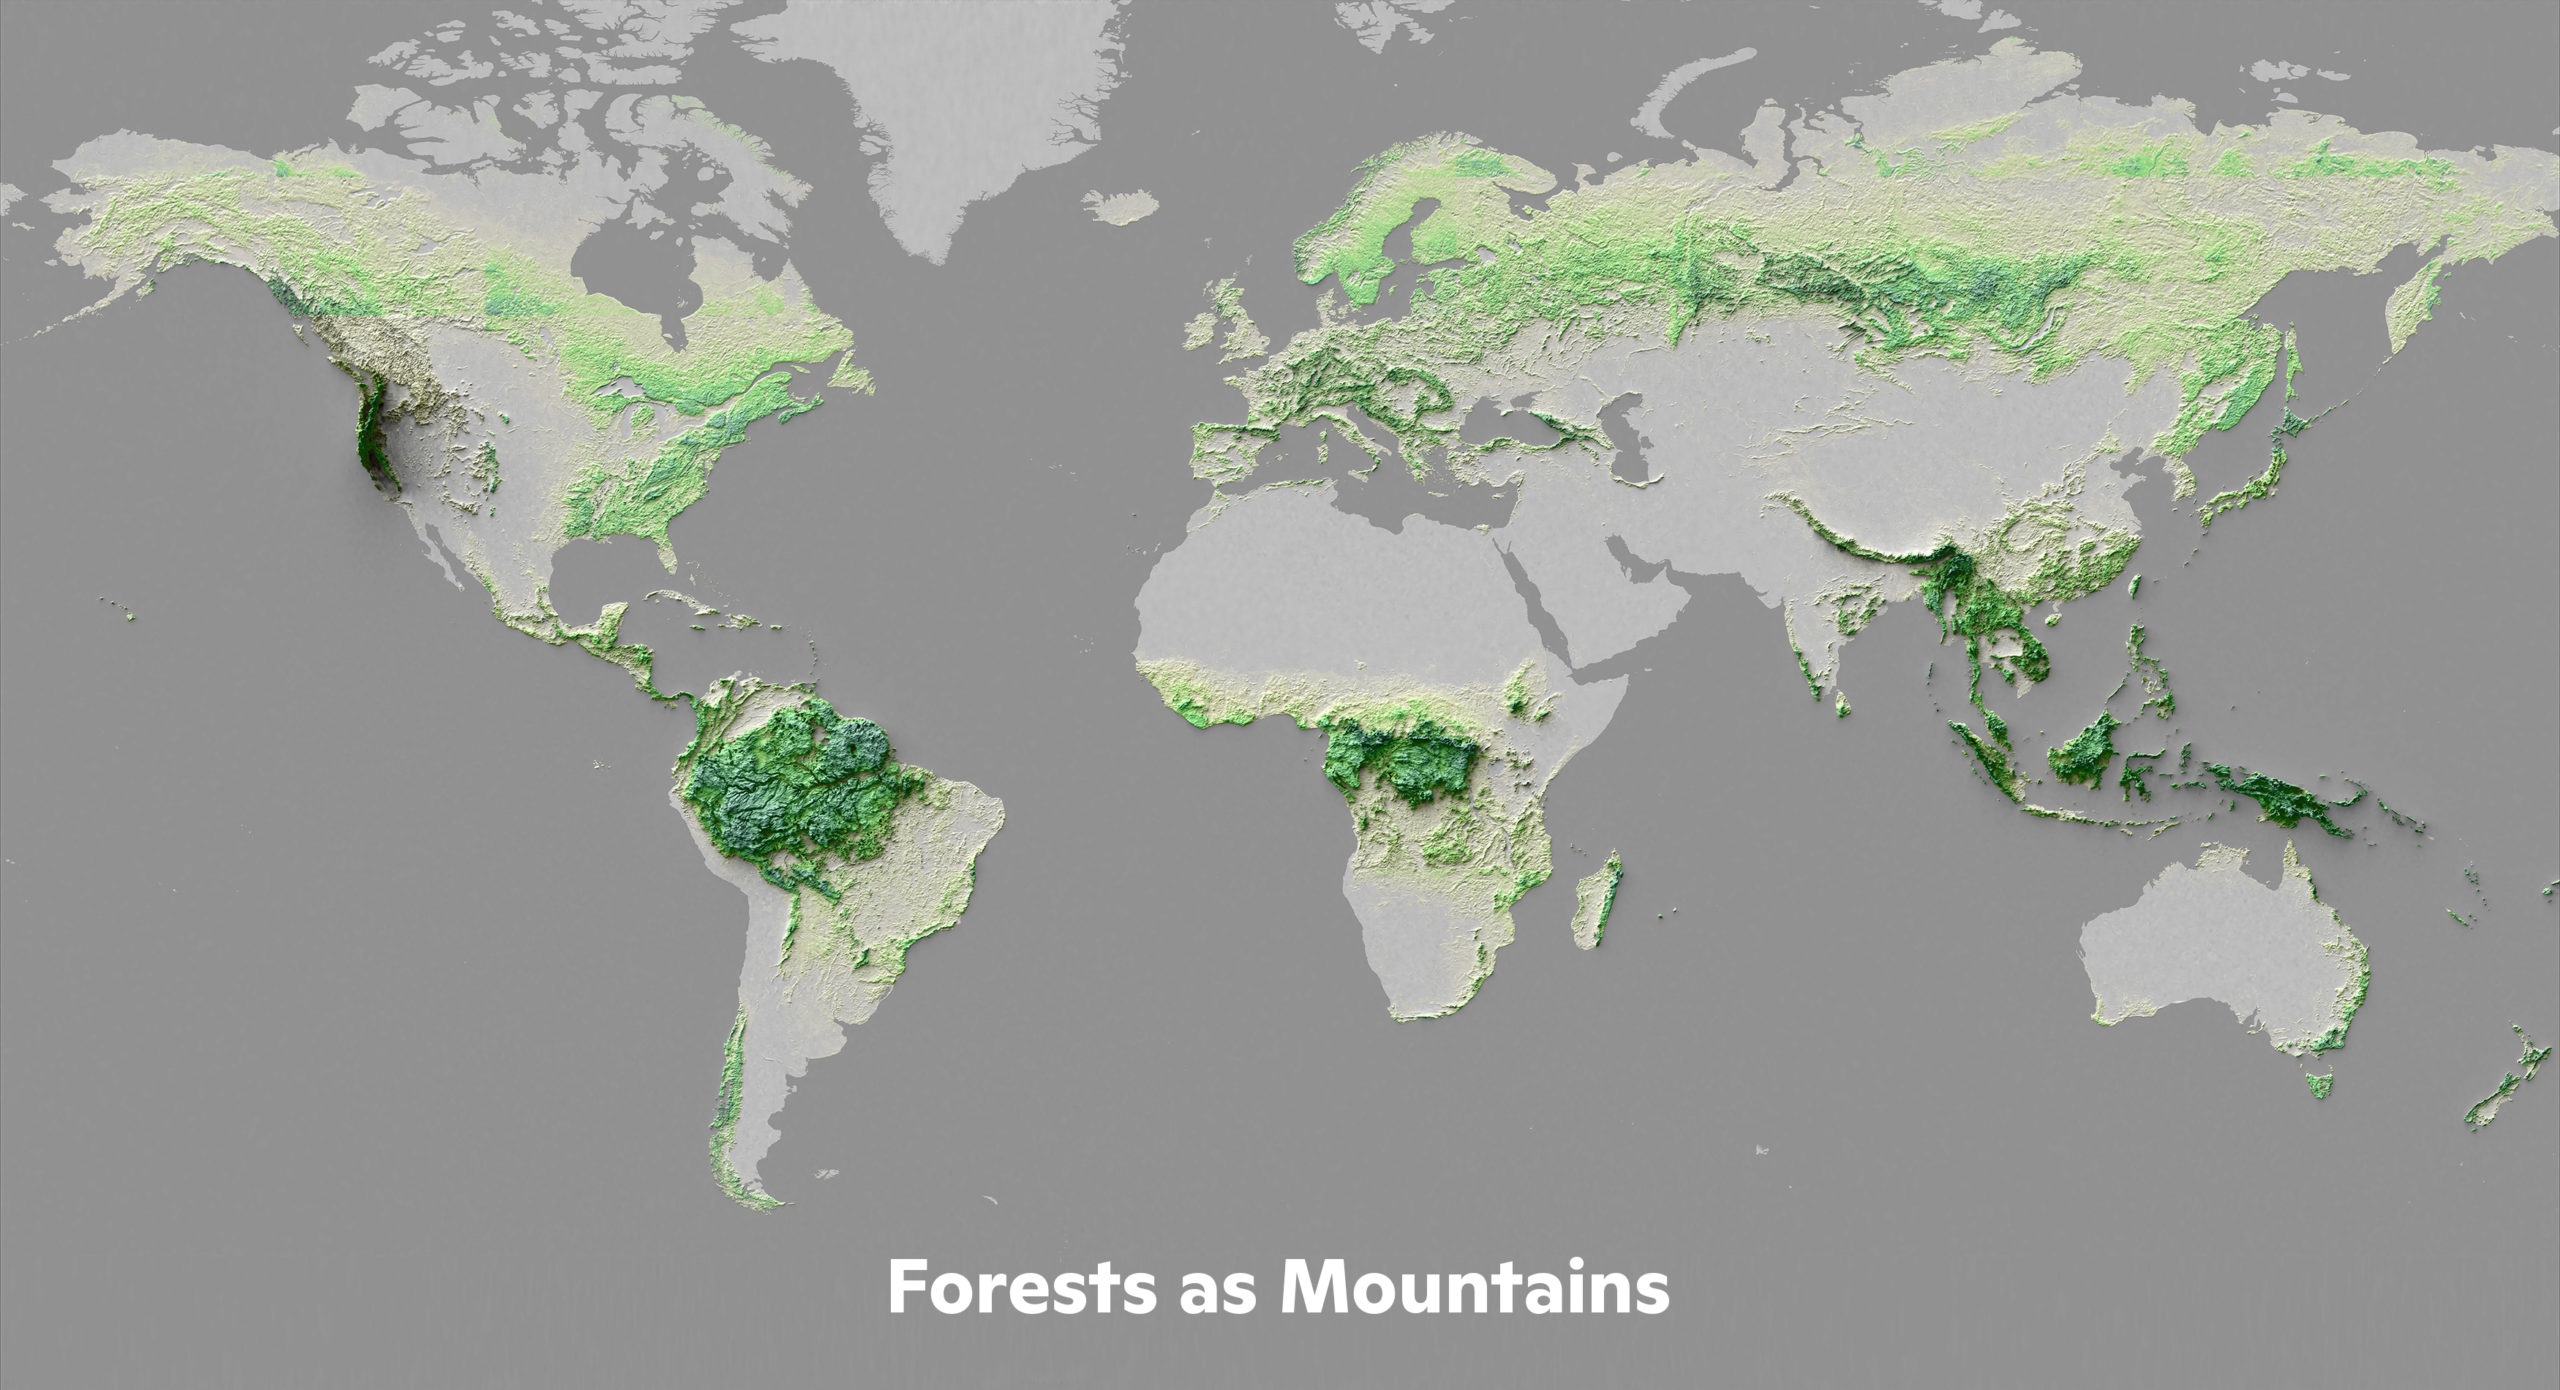 Forests as mountains illustrates where carbon is stored.